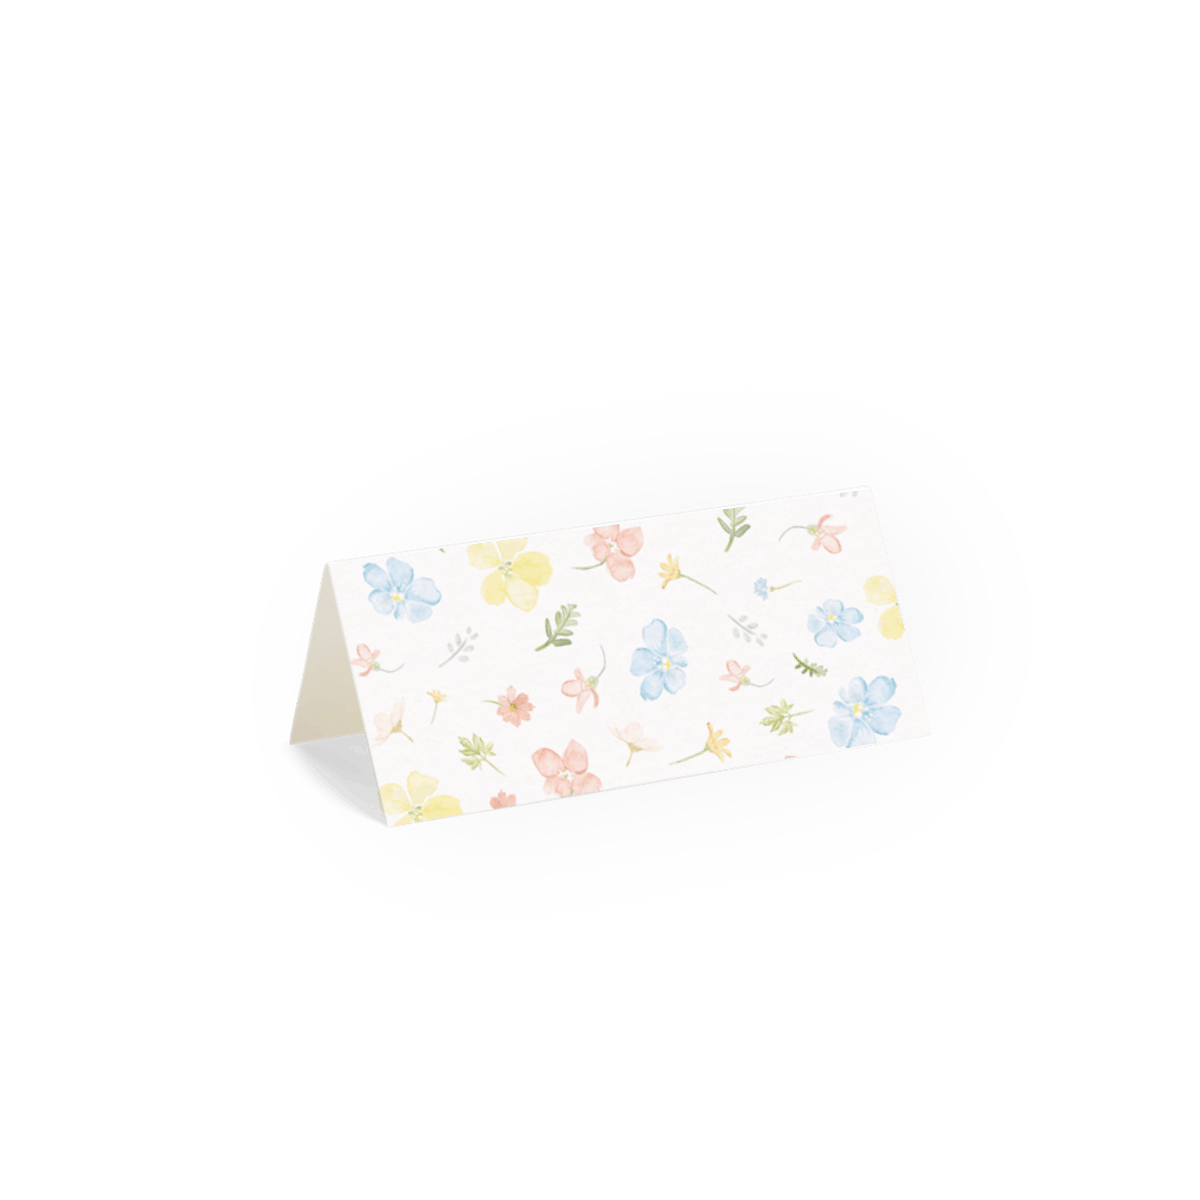 Https%3a%2f%2fwww.papier.com%2fproduct image%2f82355%2f15%2fpetite floral 19921 arriere 1562082706.png?ixlib=rb 1.1